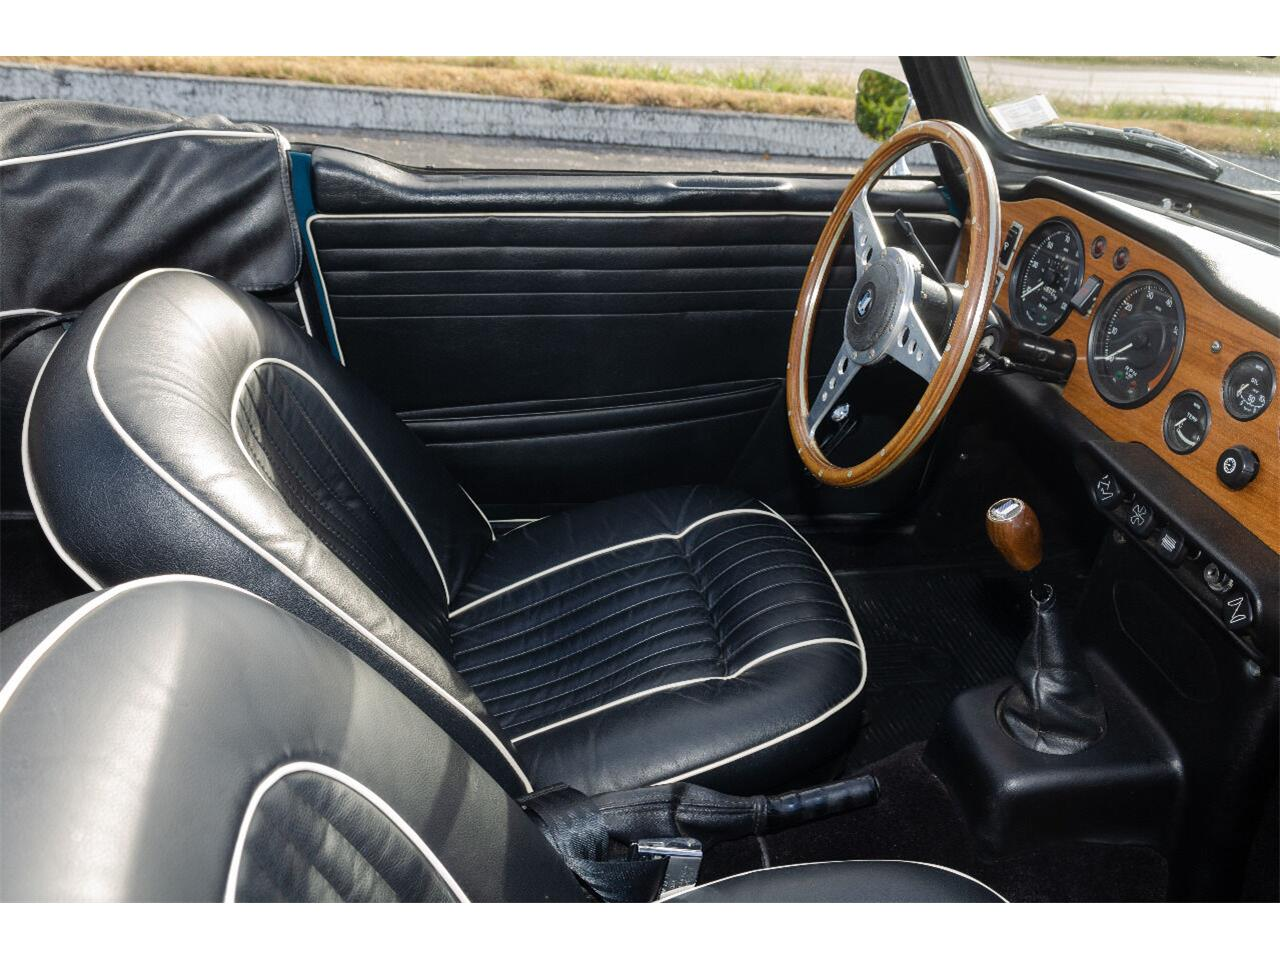 1968 Triumph TR250 (CC-1301742) for sale in St Louis, Missouri